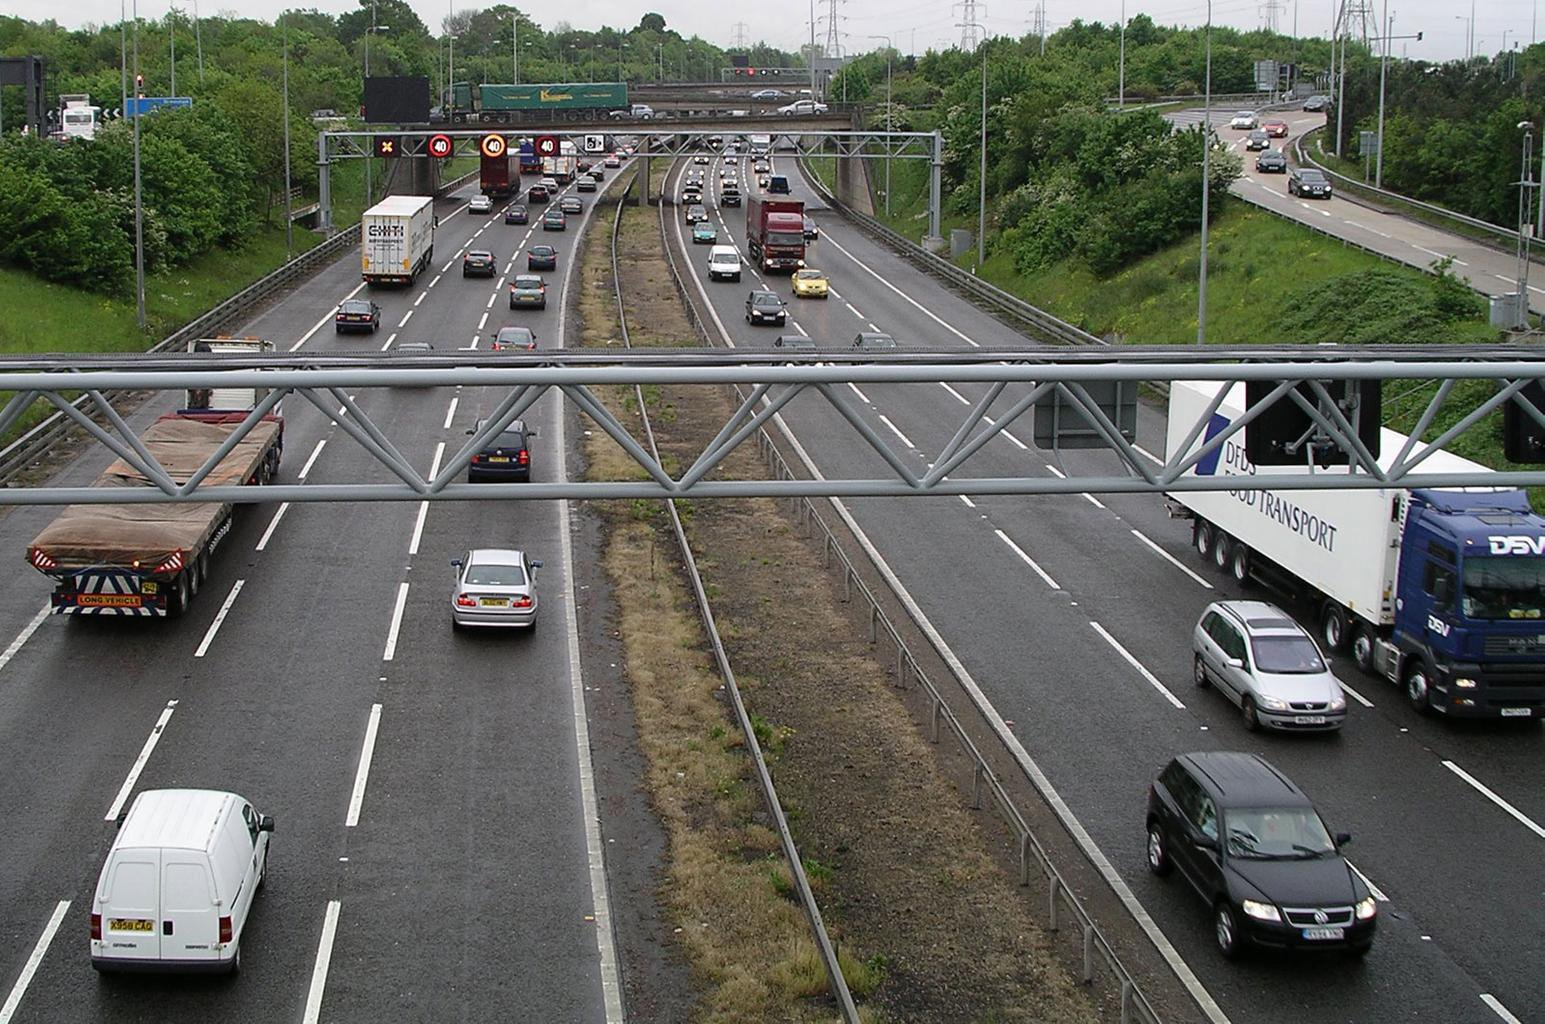 Learner drivers to be allowed on British motorways